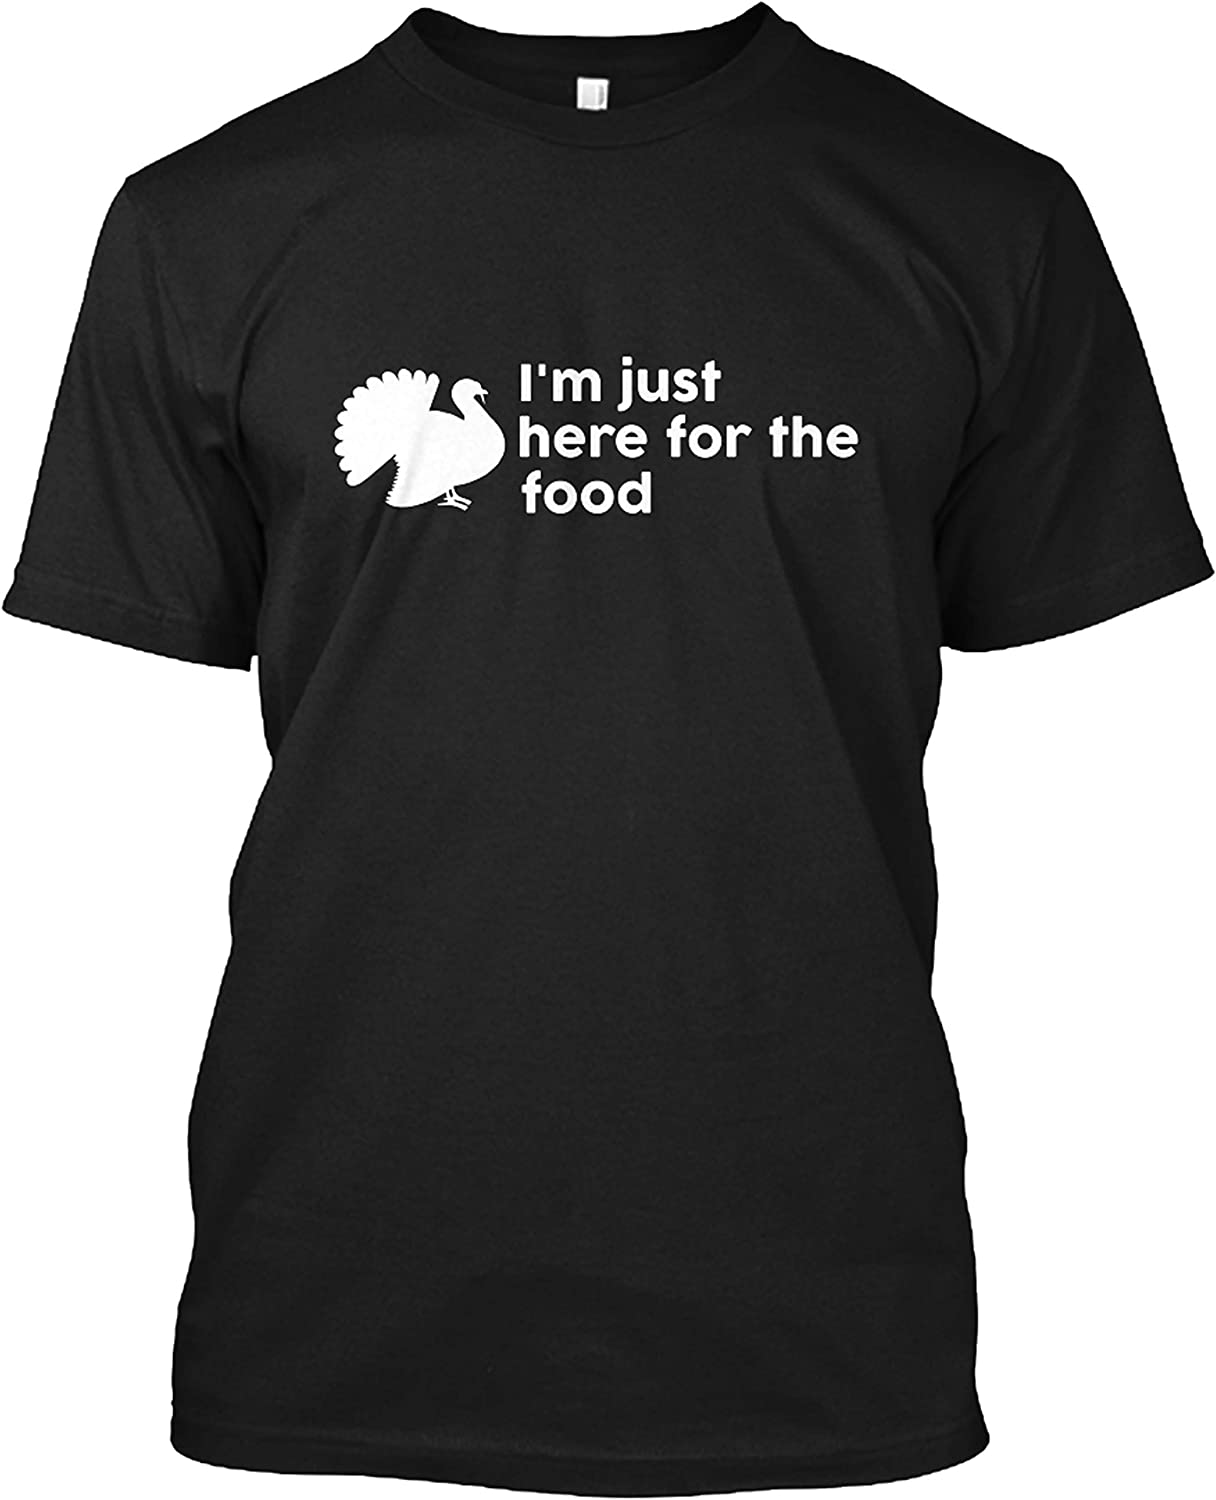 N/ Im Just Here for The Food Funny Gift T Shirt for Men Women Girls Unisex Funny Cool Tee Short Sleeve